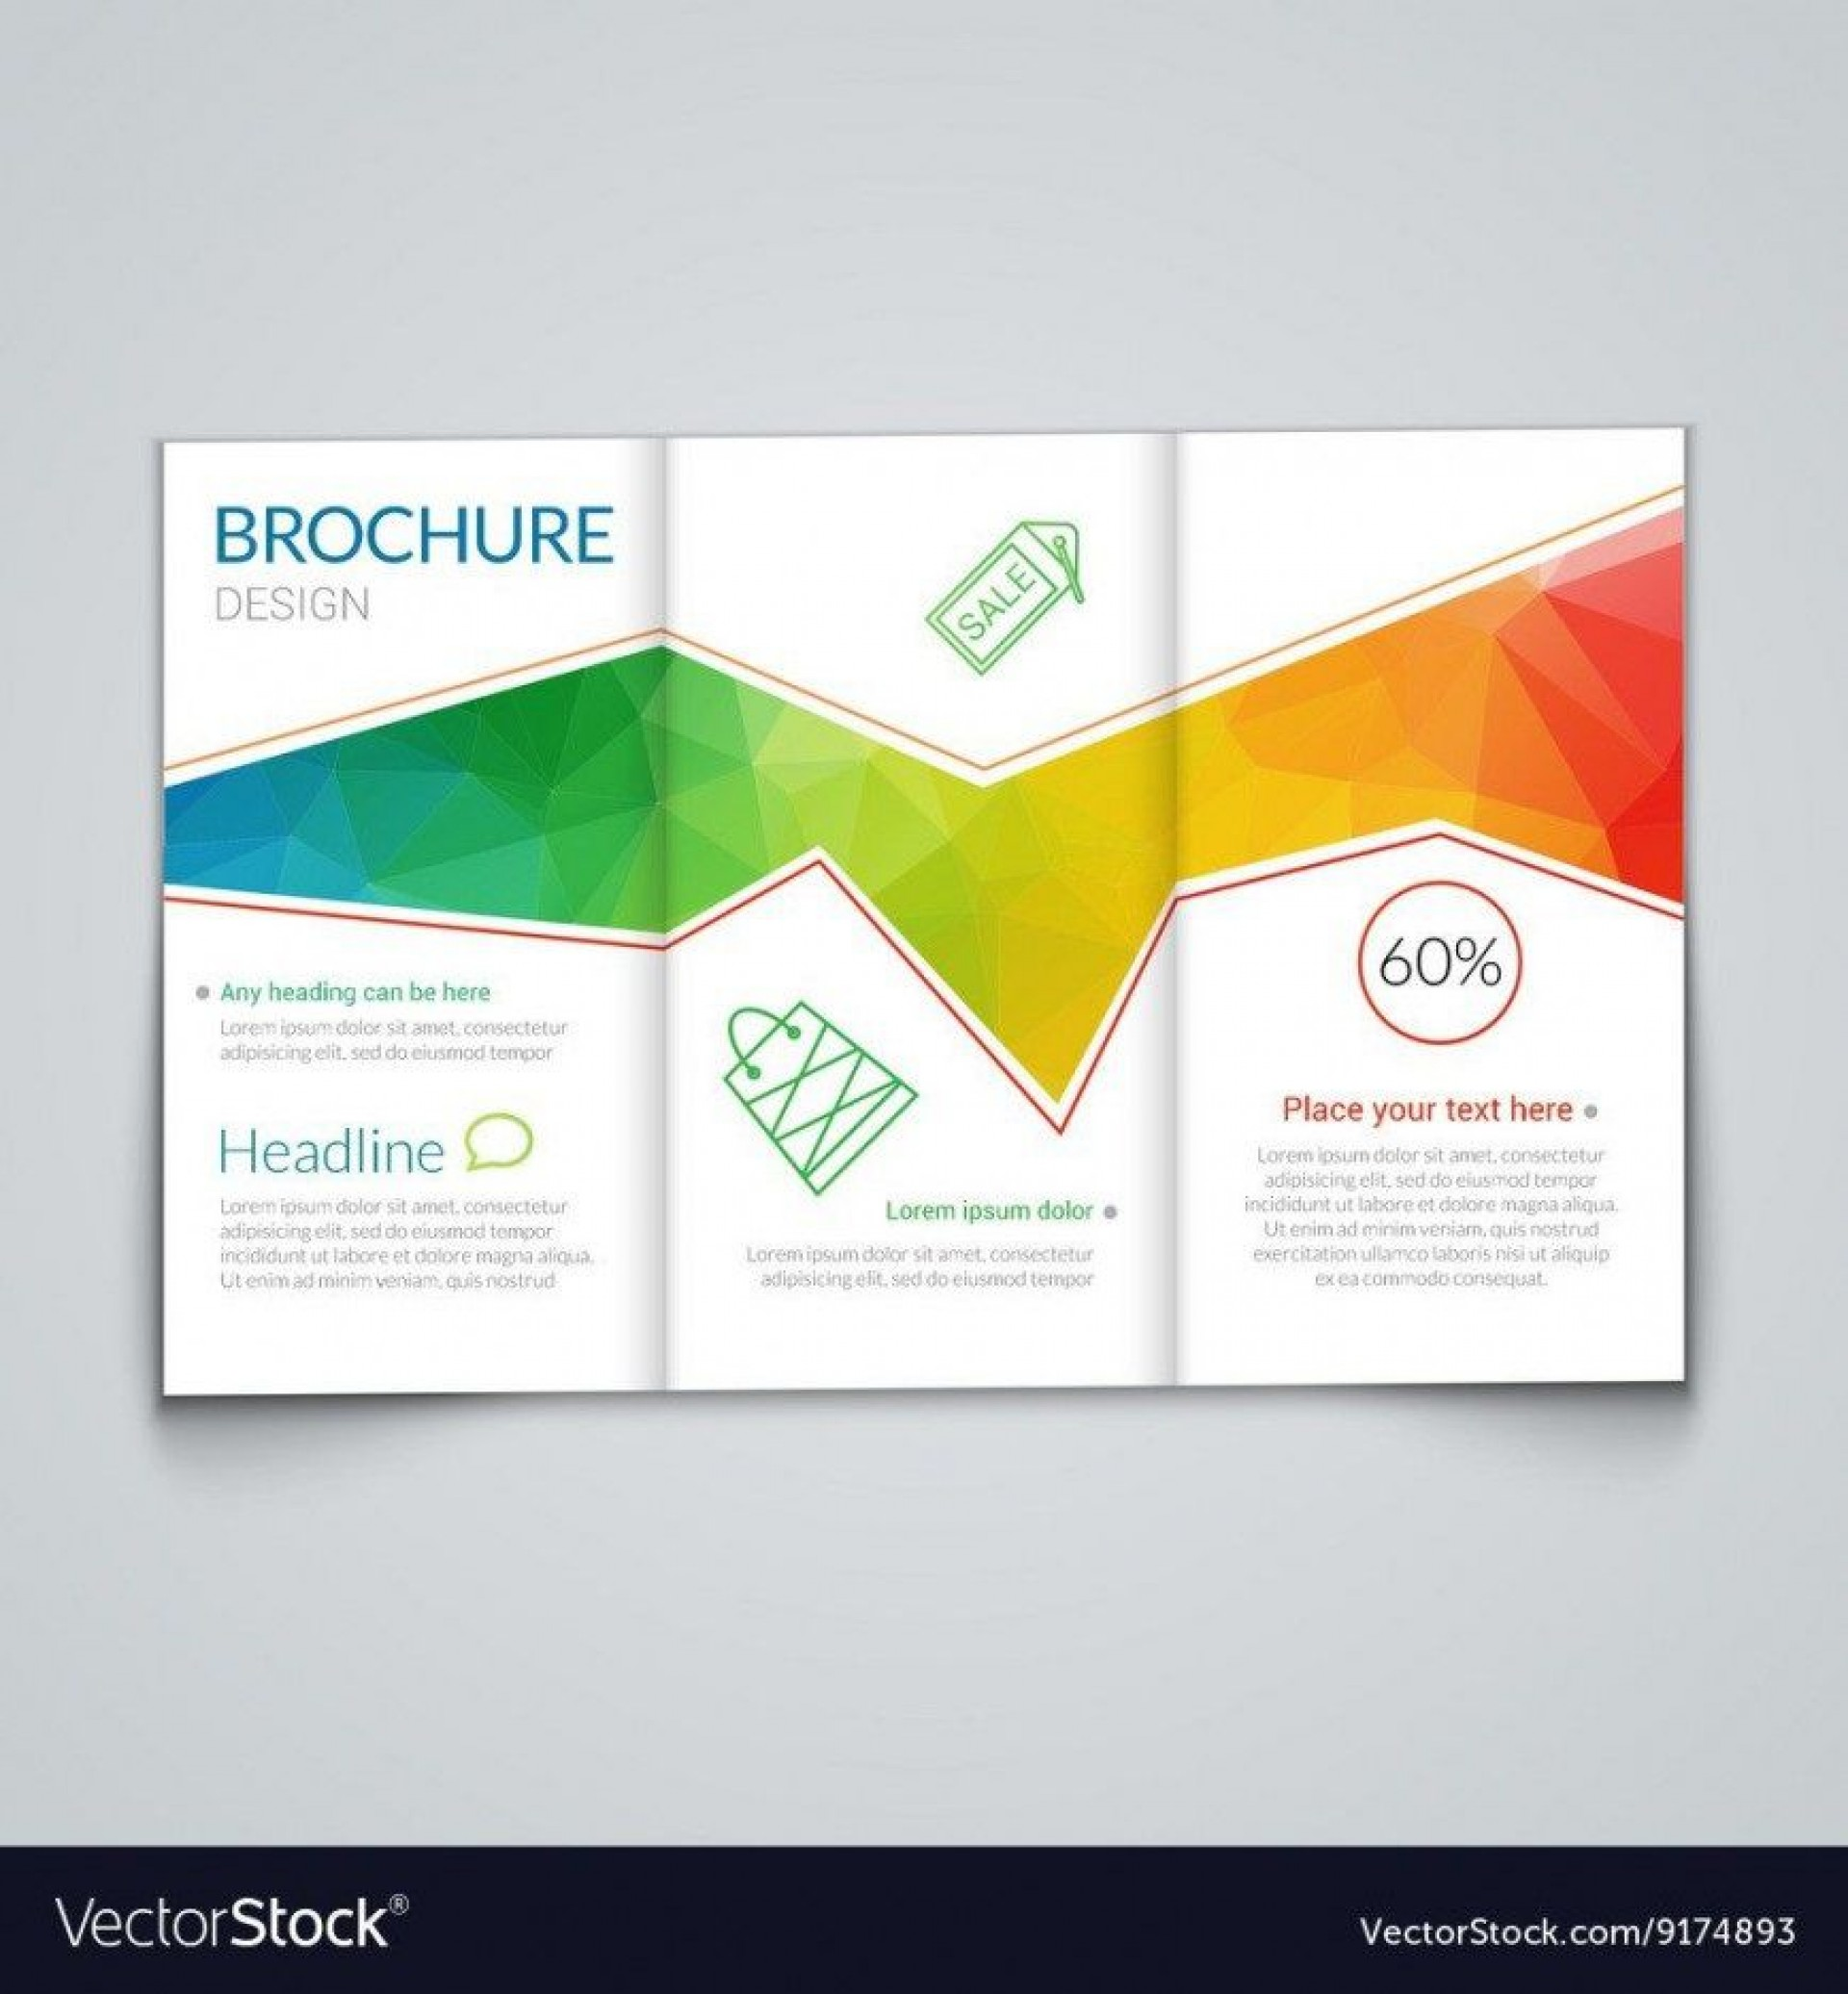 002 Marvelou Download Brochure Template For Microsoft Word 2007 High Resolution  Free1920